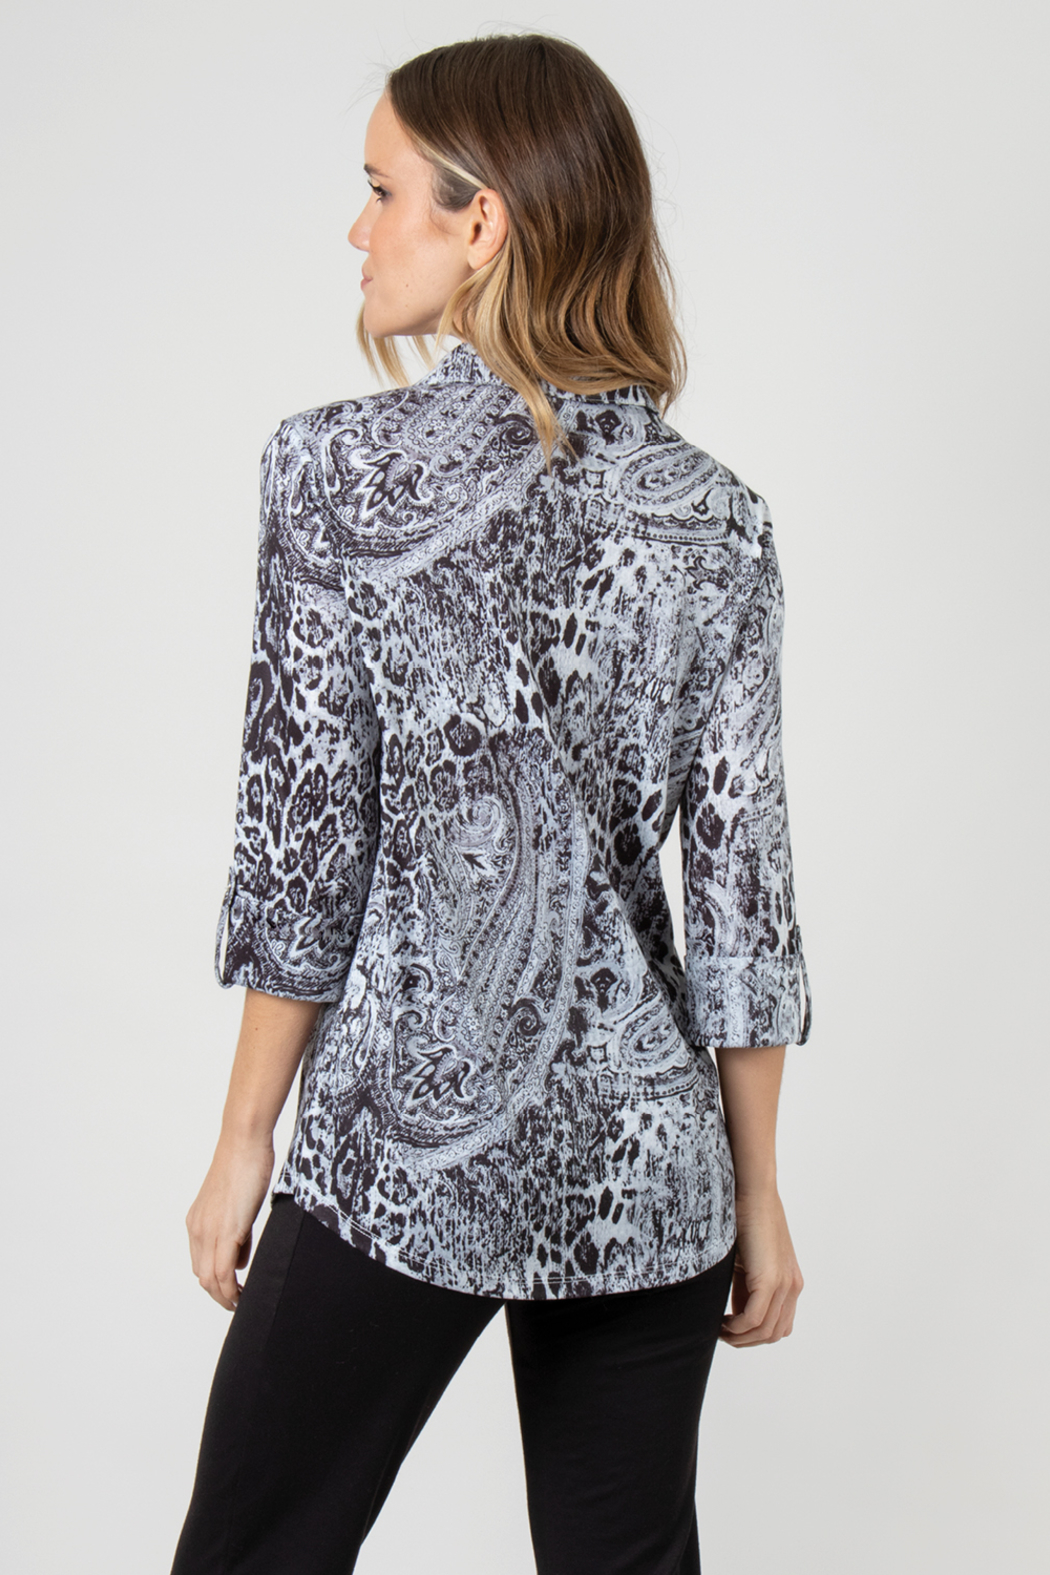 Simply Noelle Mixed Print Button Up - Front Full Image